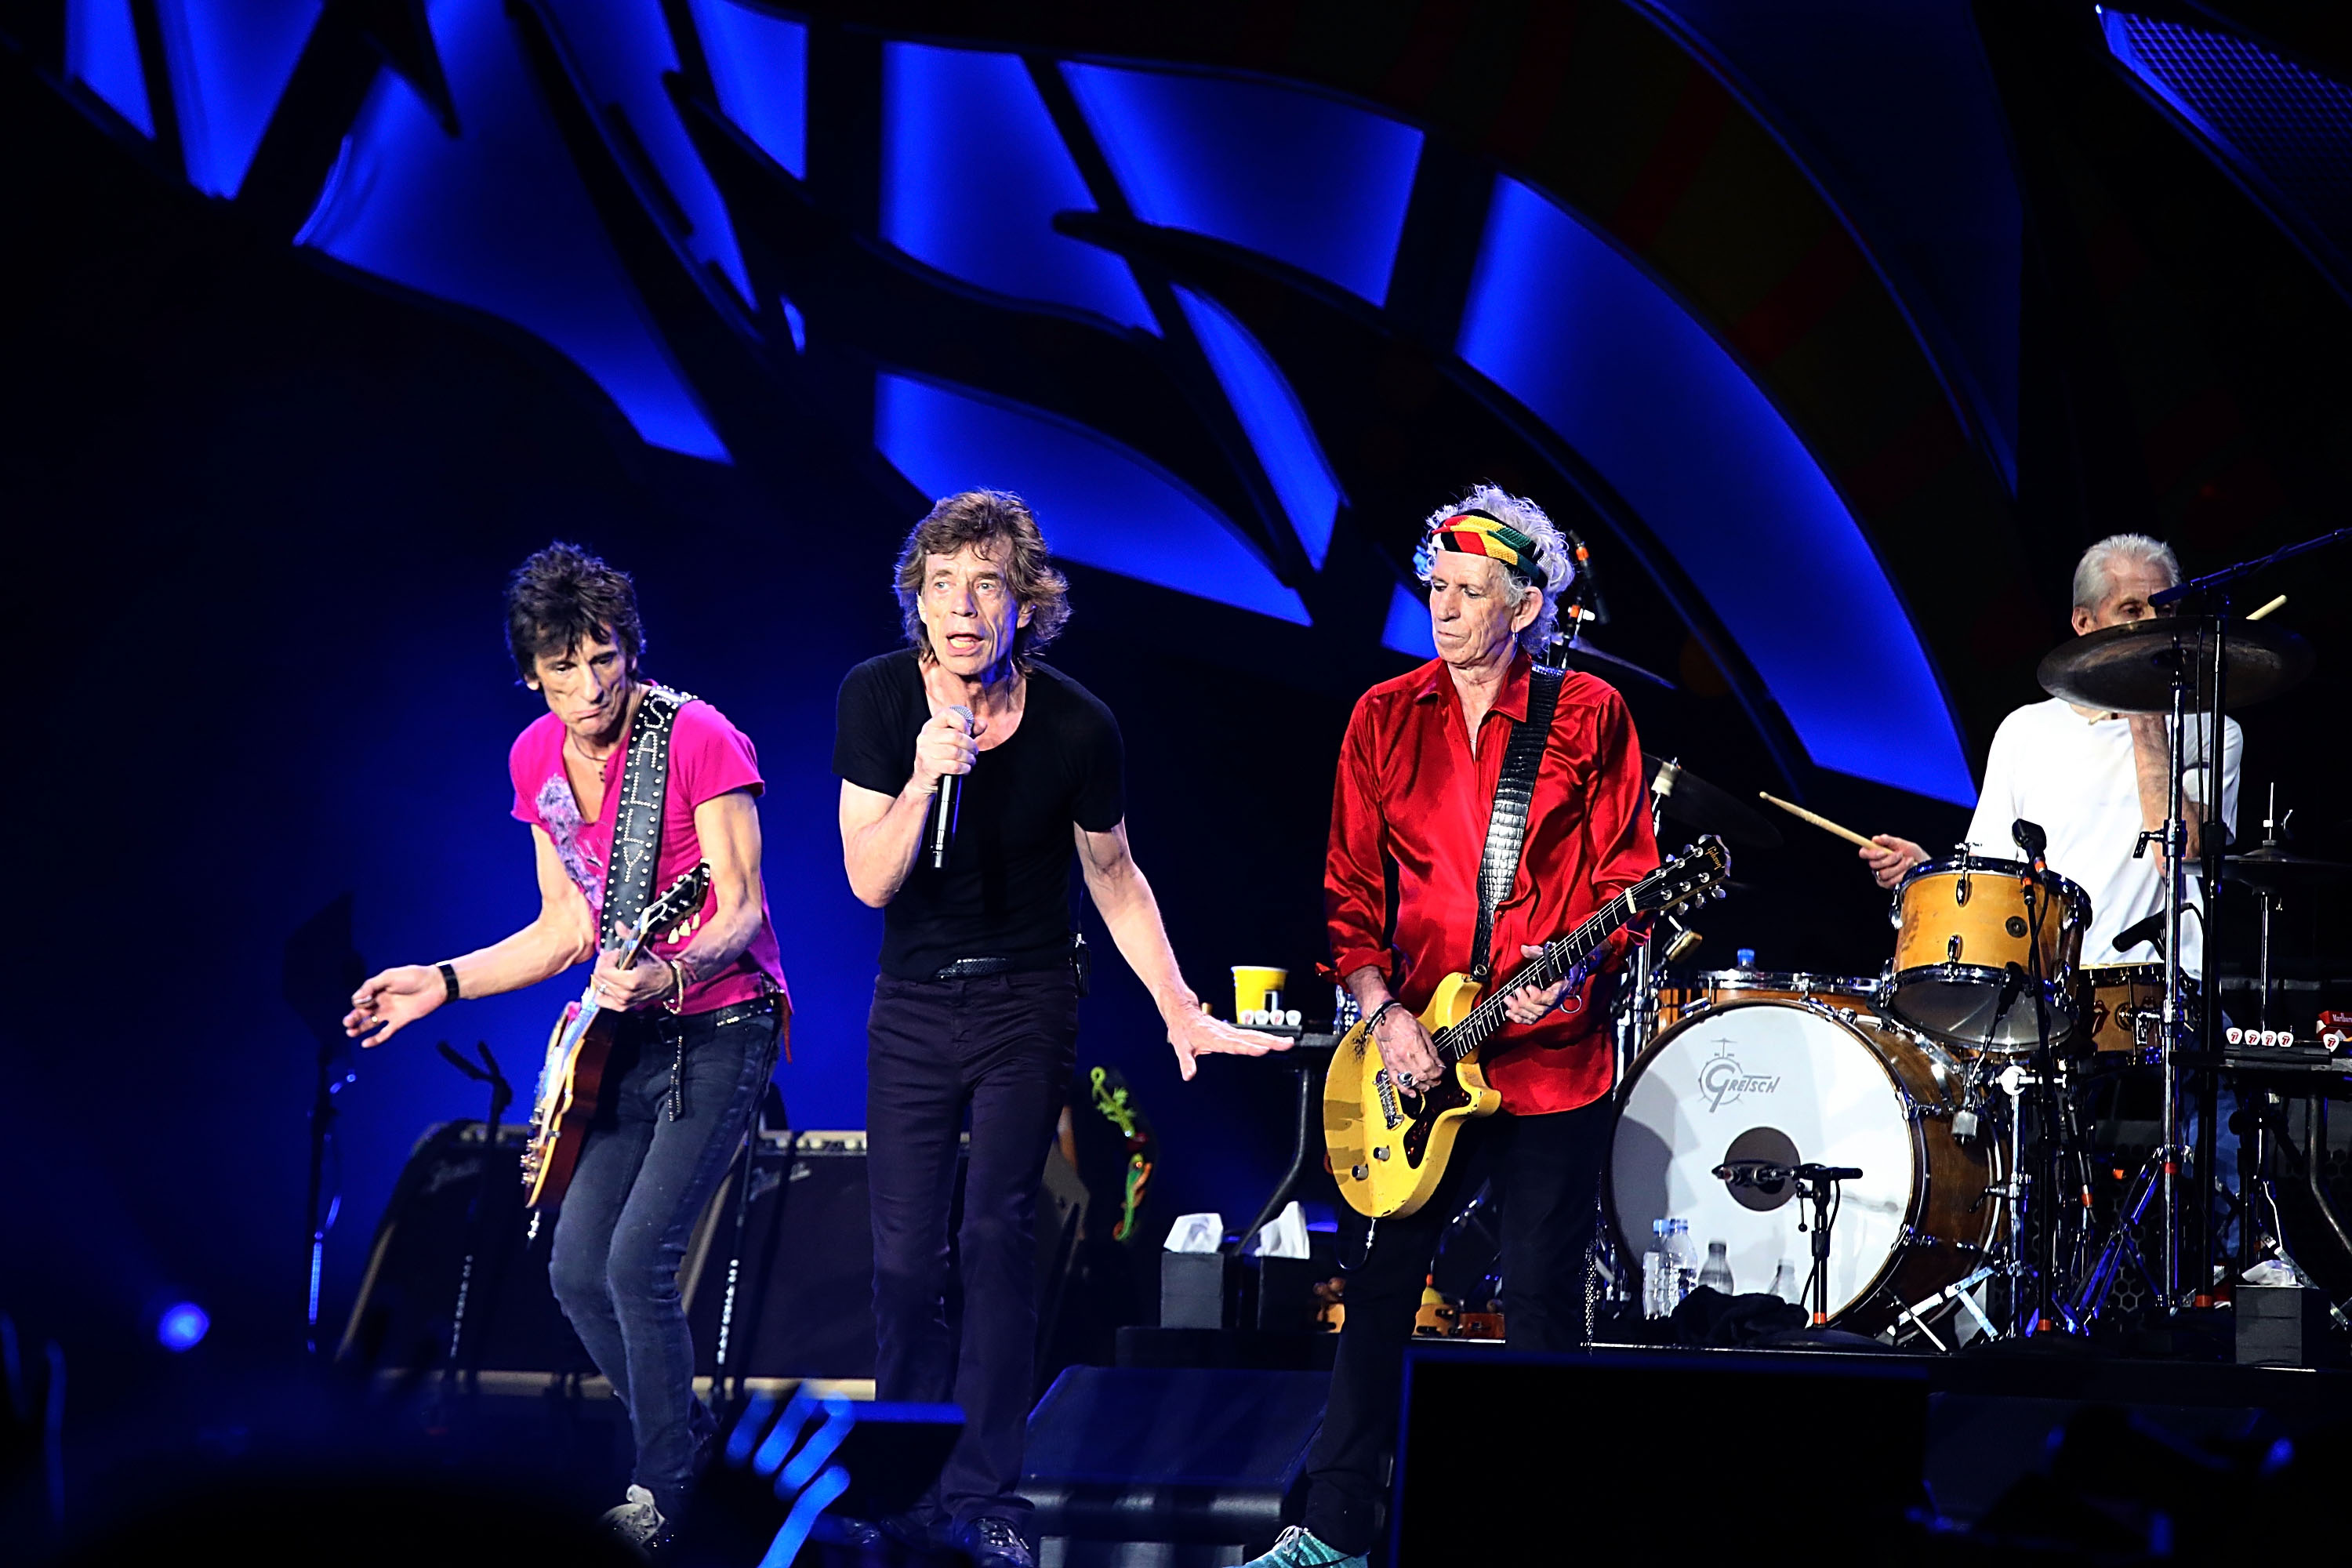 HAVANA, CUBA - MARCH 25:  (L - R) Ron Wood, Mick Jagger, Keith Richards and  Charlie Watts perform with the Rolling Stones at